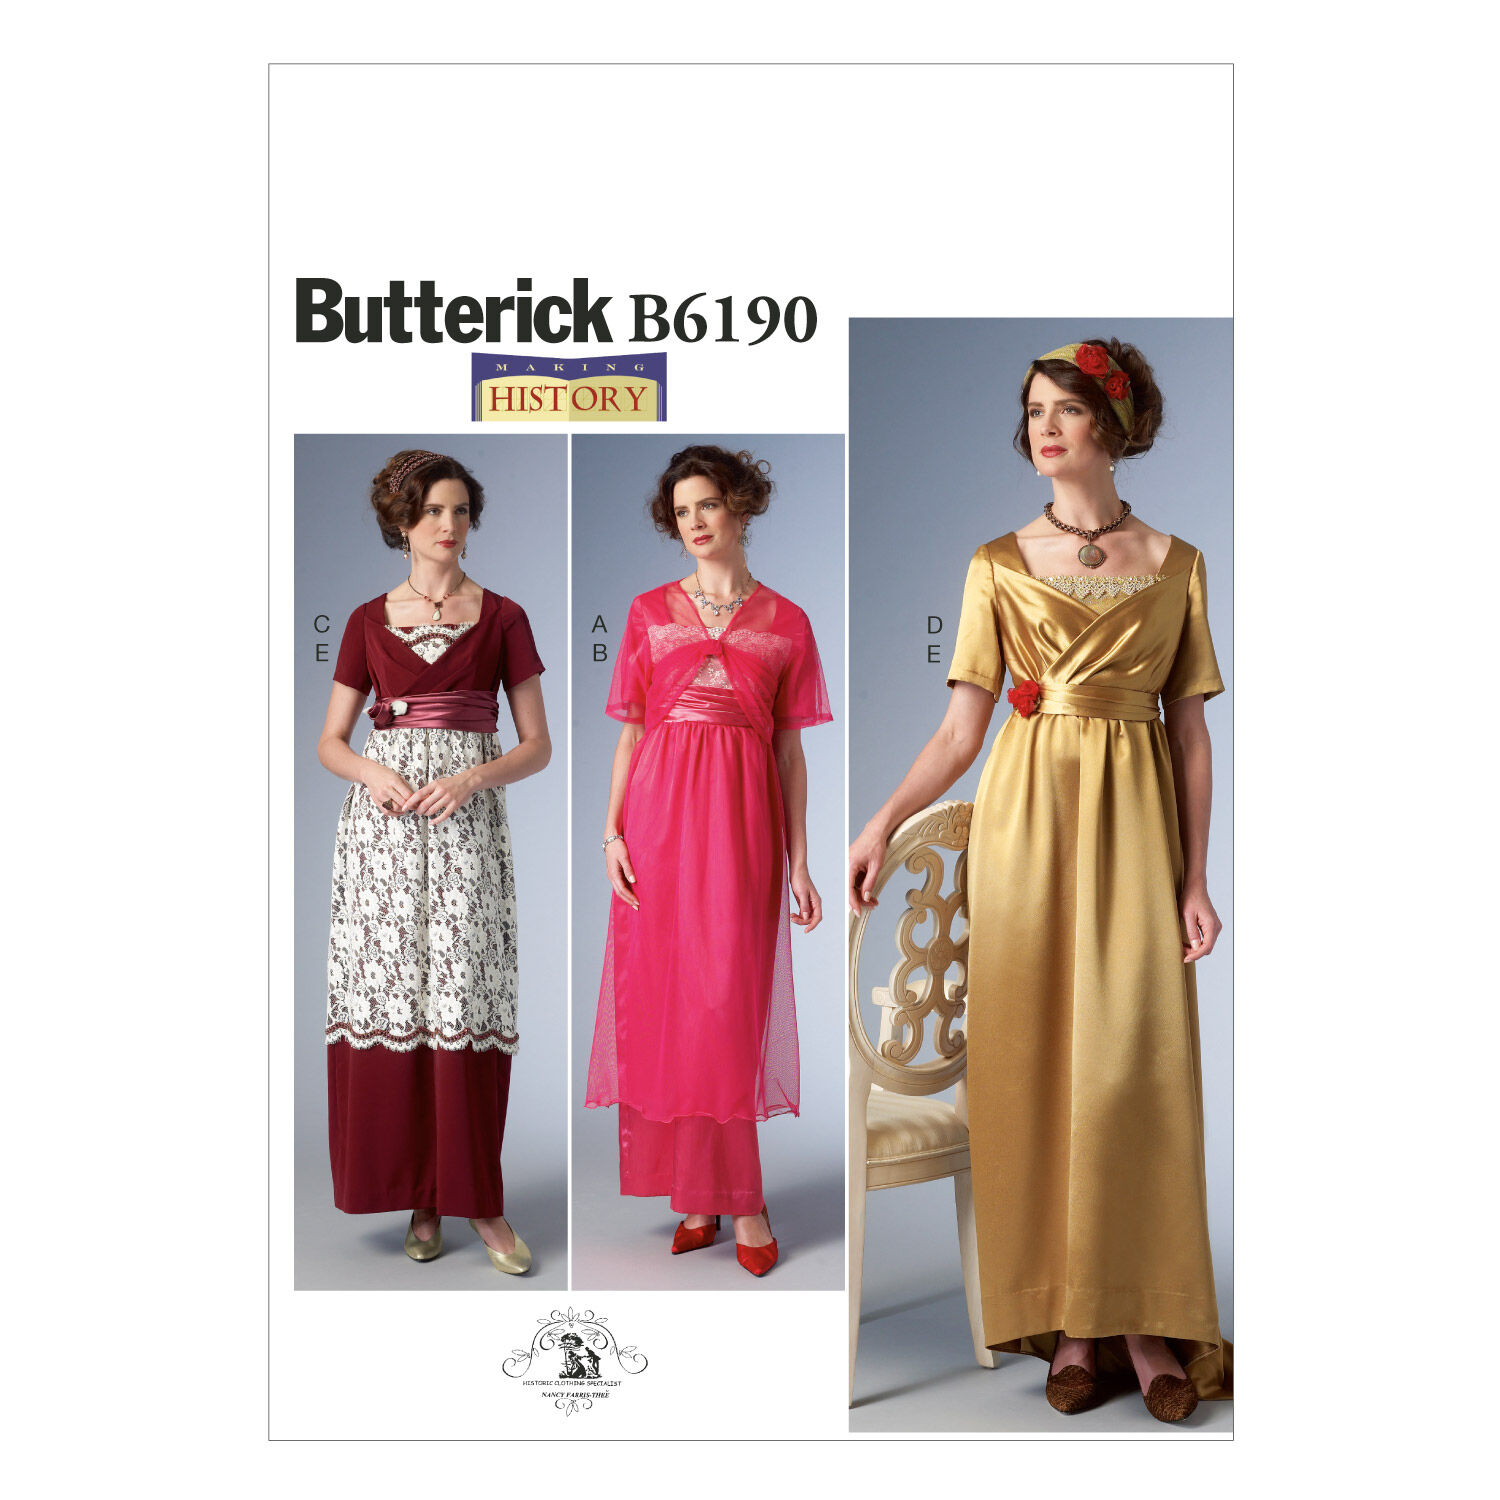 Titanic Clothing, Fashion, Outfit Ideas Butterick - Pattern B6190 - Empire - Waist Dress Jacket and Headbands - Sizes 6-8-10-12-14 - Patterns - At JOANN Fabrics  Crafts $13.96 AT vintagedancer.com